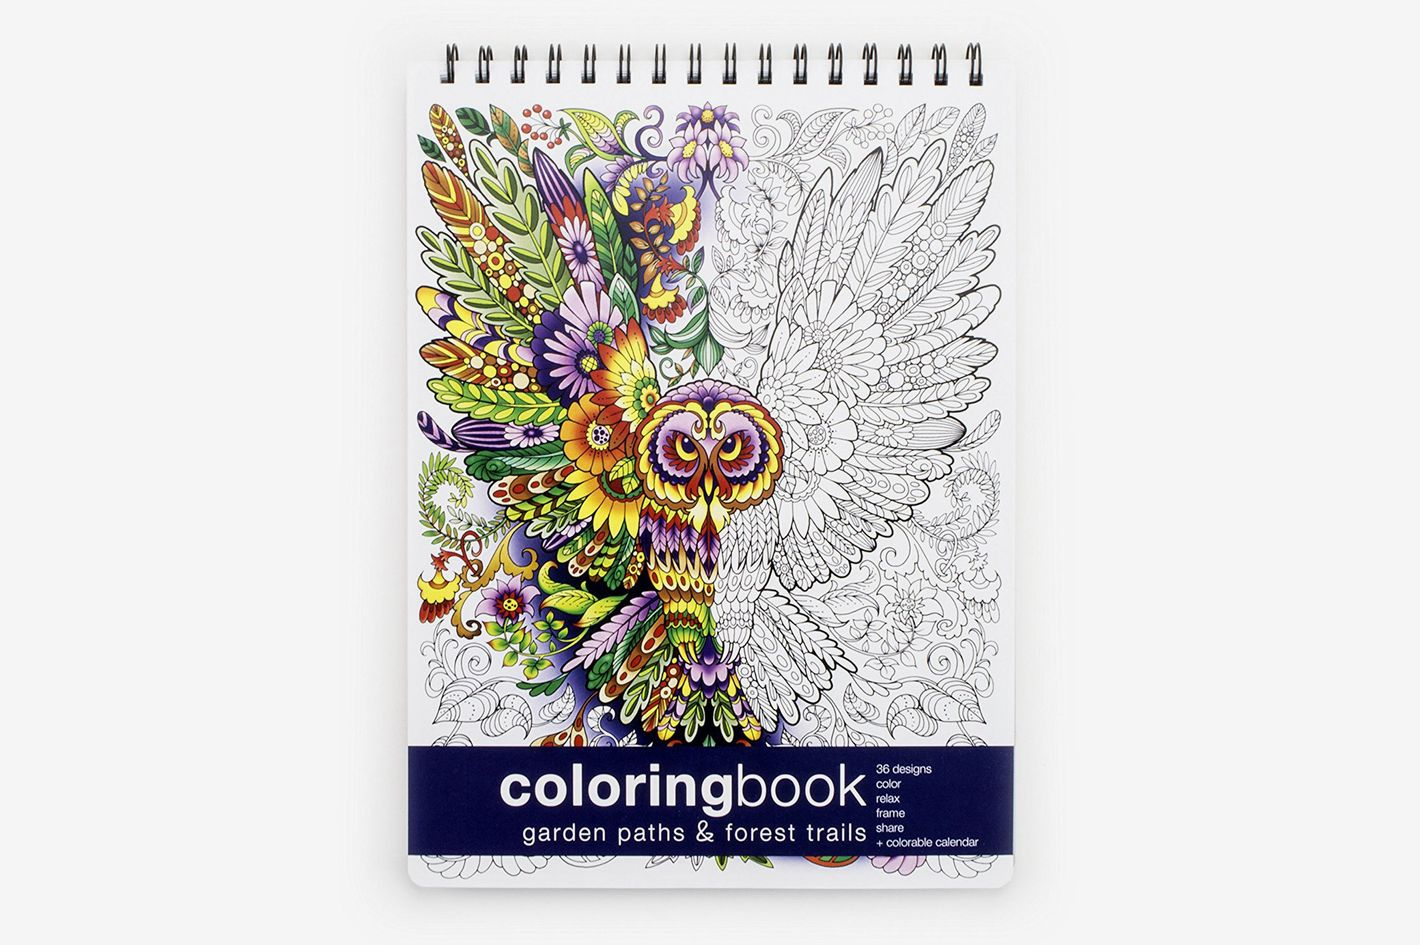 e02749539831b 20 Best Adult Coloring Books 2018